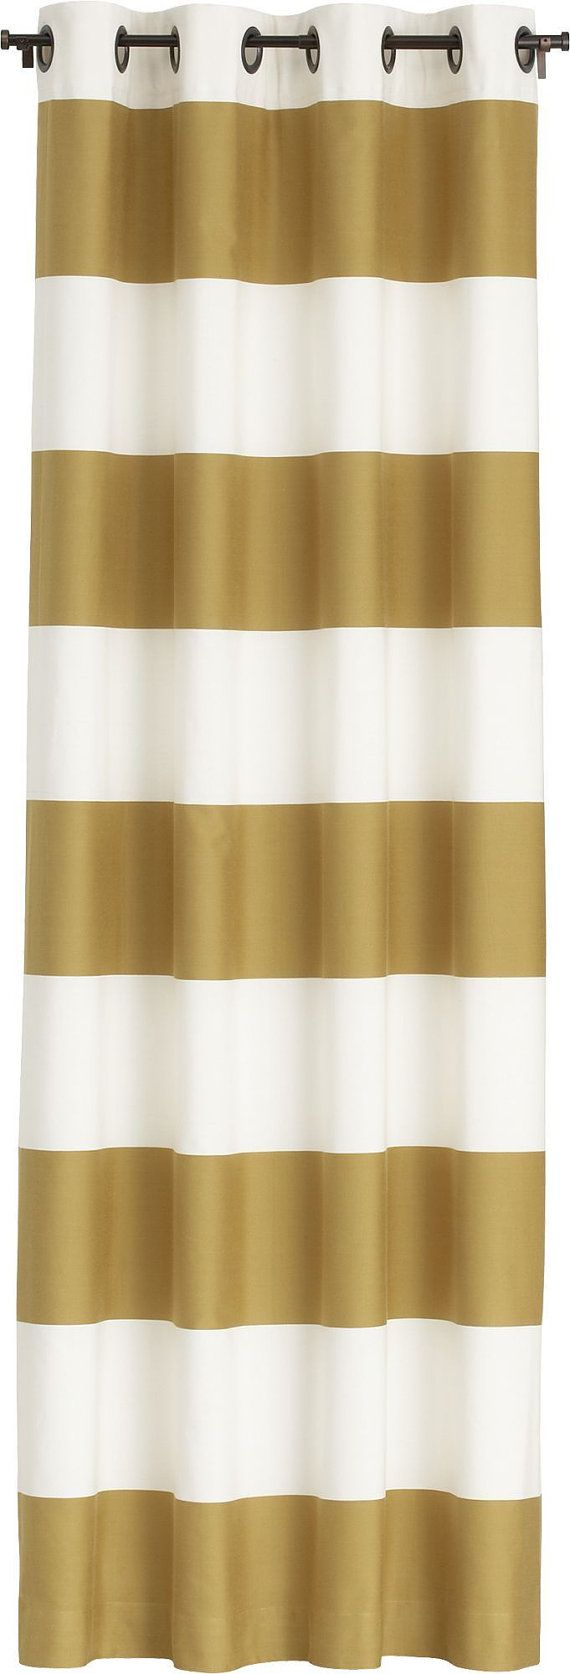 The  Best Horizontal Striped Curtains Ideas On Pinterest - Brown and white striped shower curtain